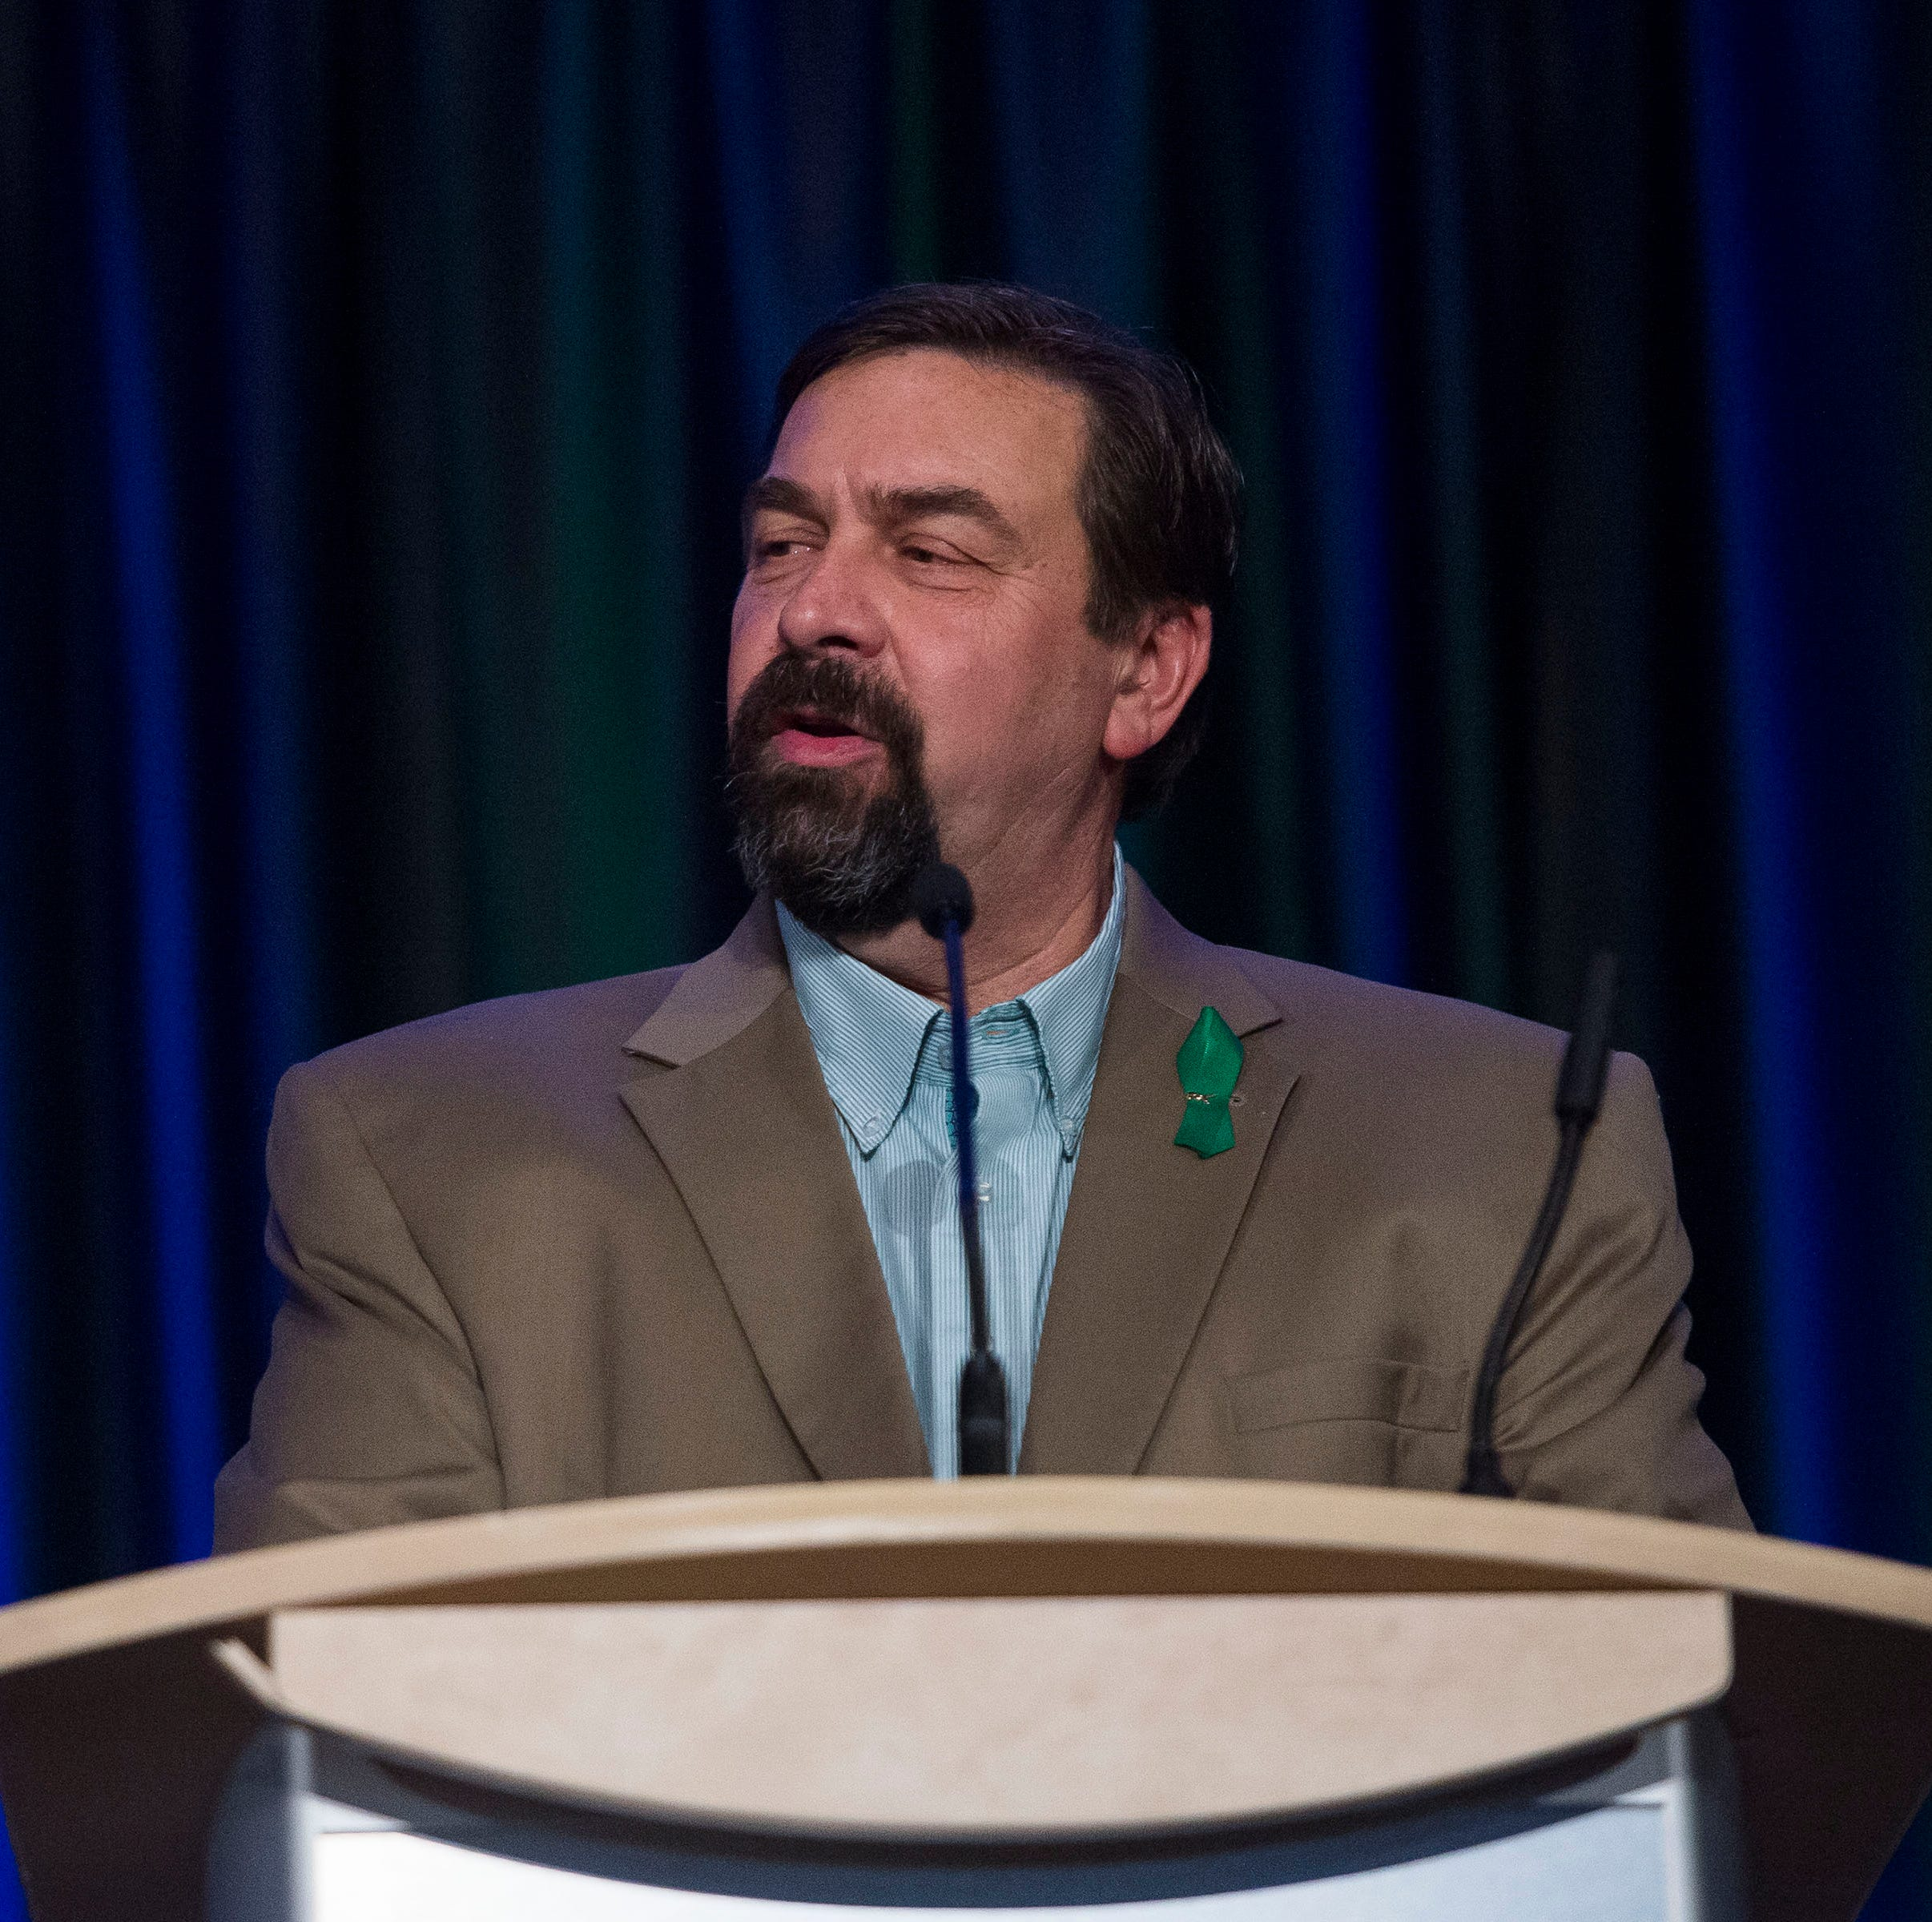 CSU President Tony Frank wins Fort Collins Chamber's top honor